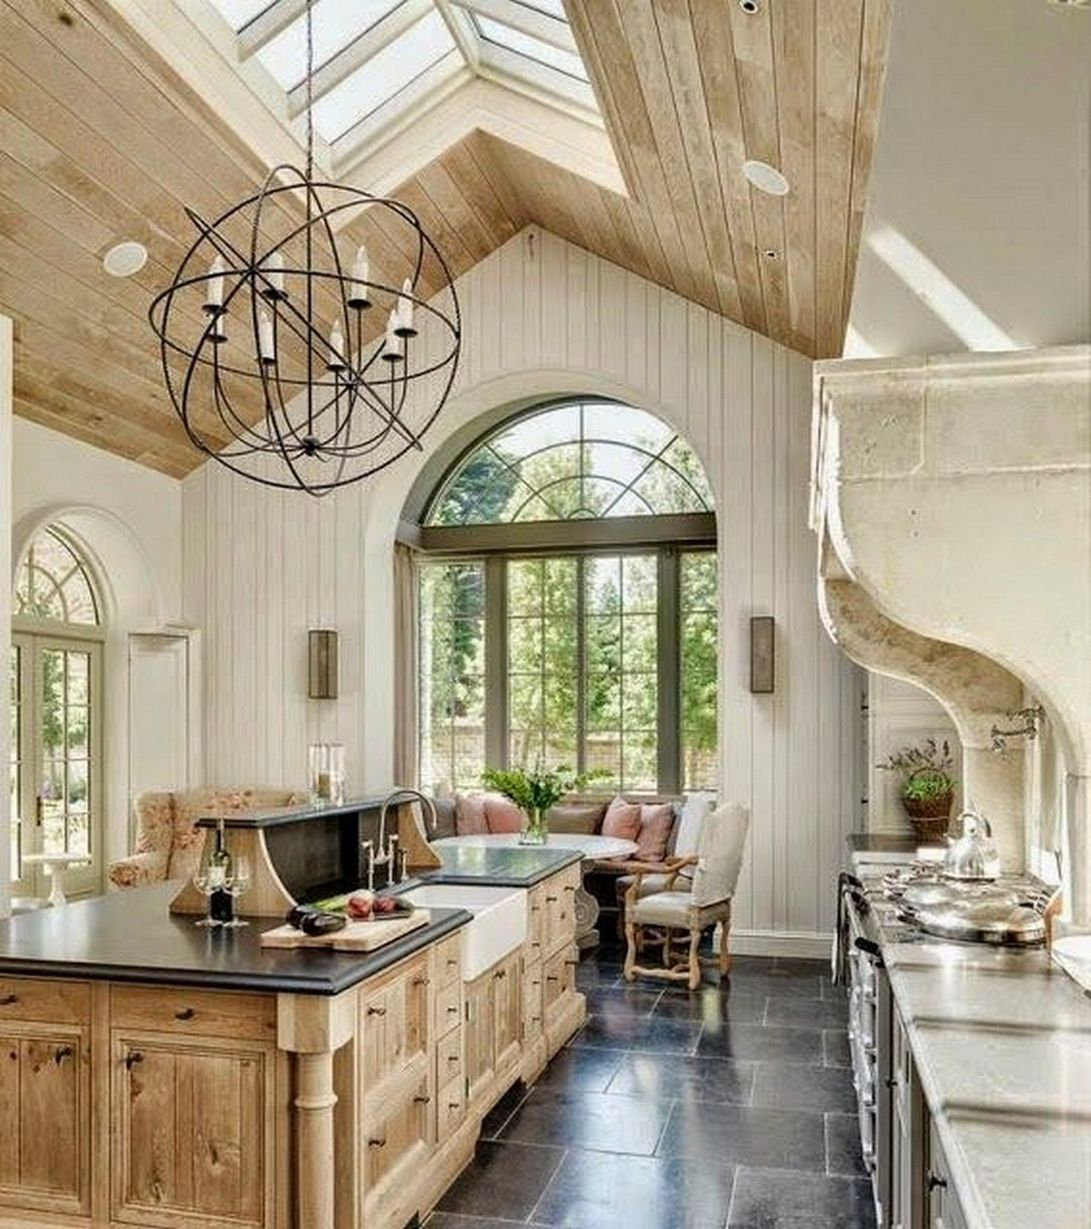 Pin by andrea nunley on kitchens pinterest country kitchen designs french country kitchens for French kitchen design